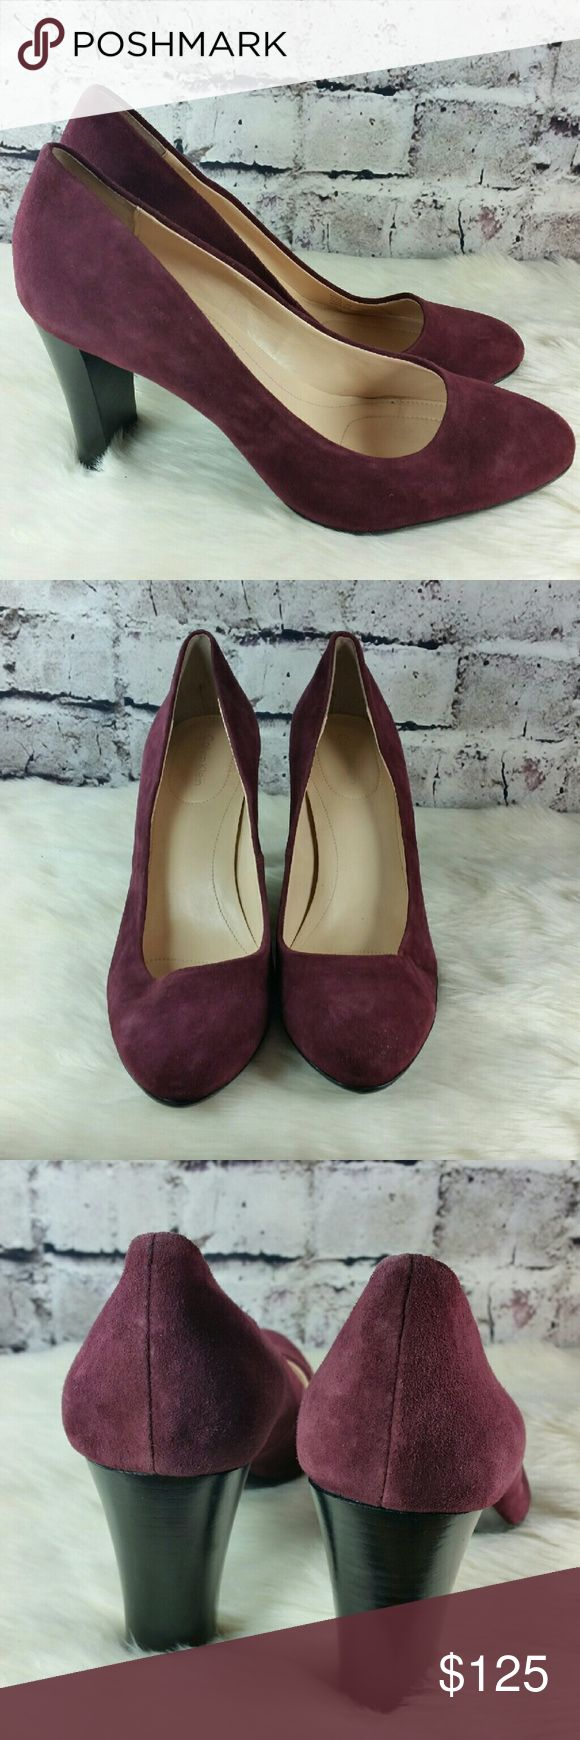 """Calvin Klein """"Olive"""" wine colored suede pumps. Calvin Klein """"Olive"""" wine colored suede pumps. Heels are 3.5 inches. Very good condition. Calvin Klein Shoes Heels"""